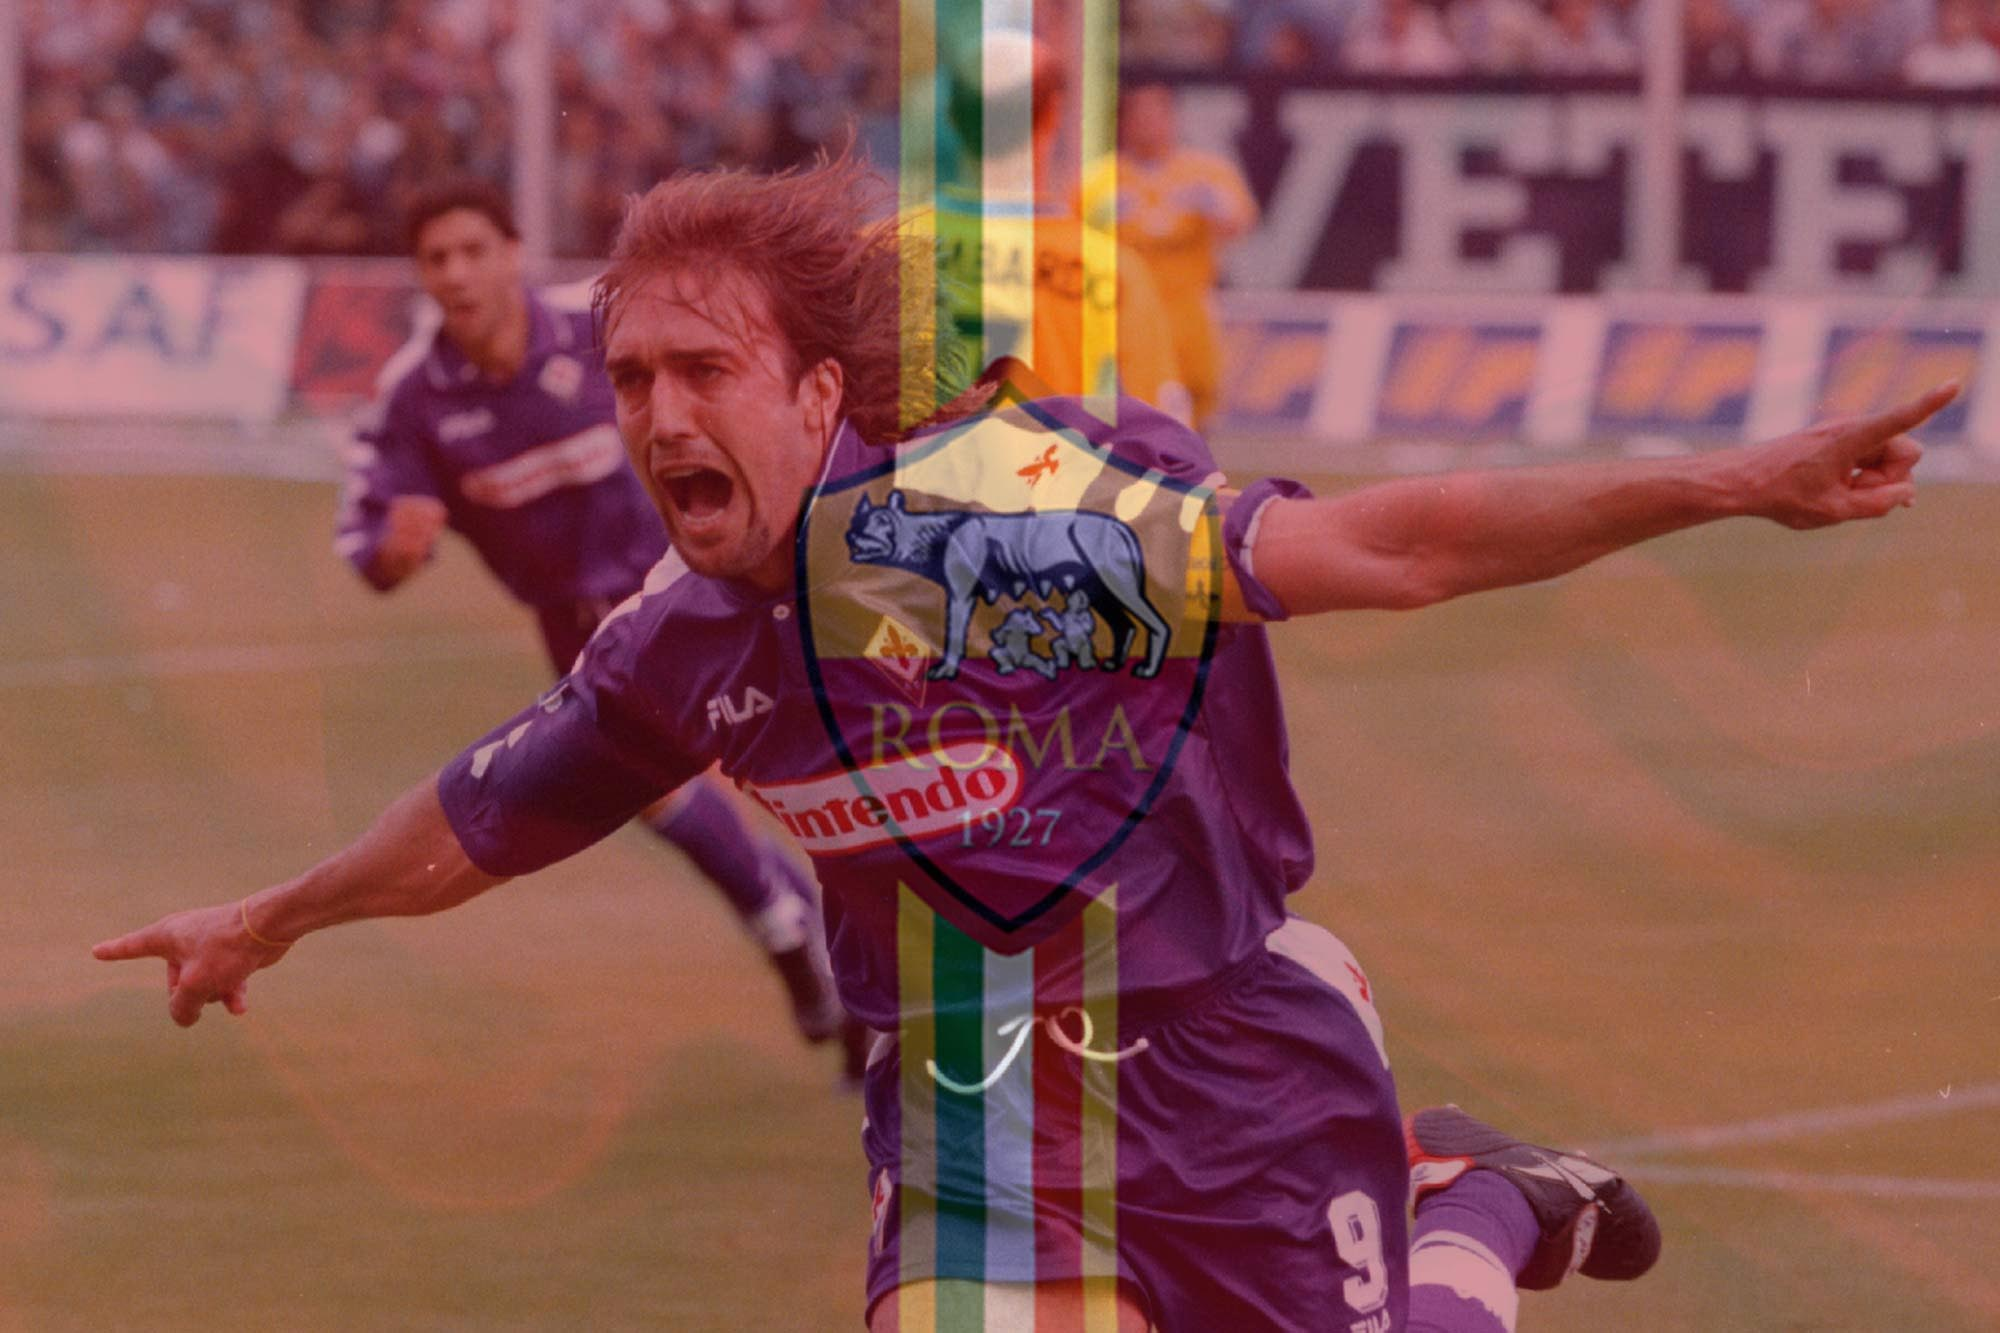 Famous Football Player Gabriel Batistuta